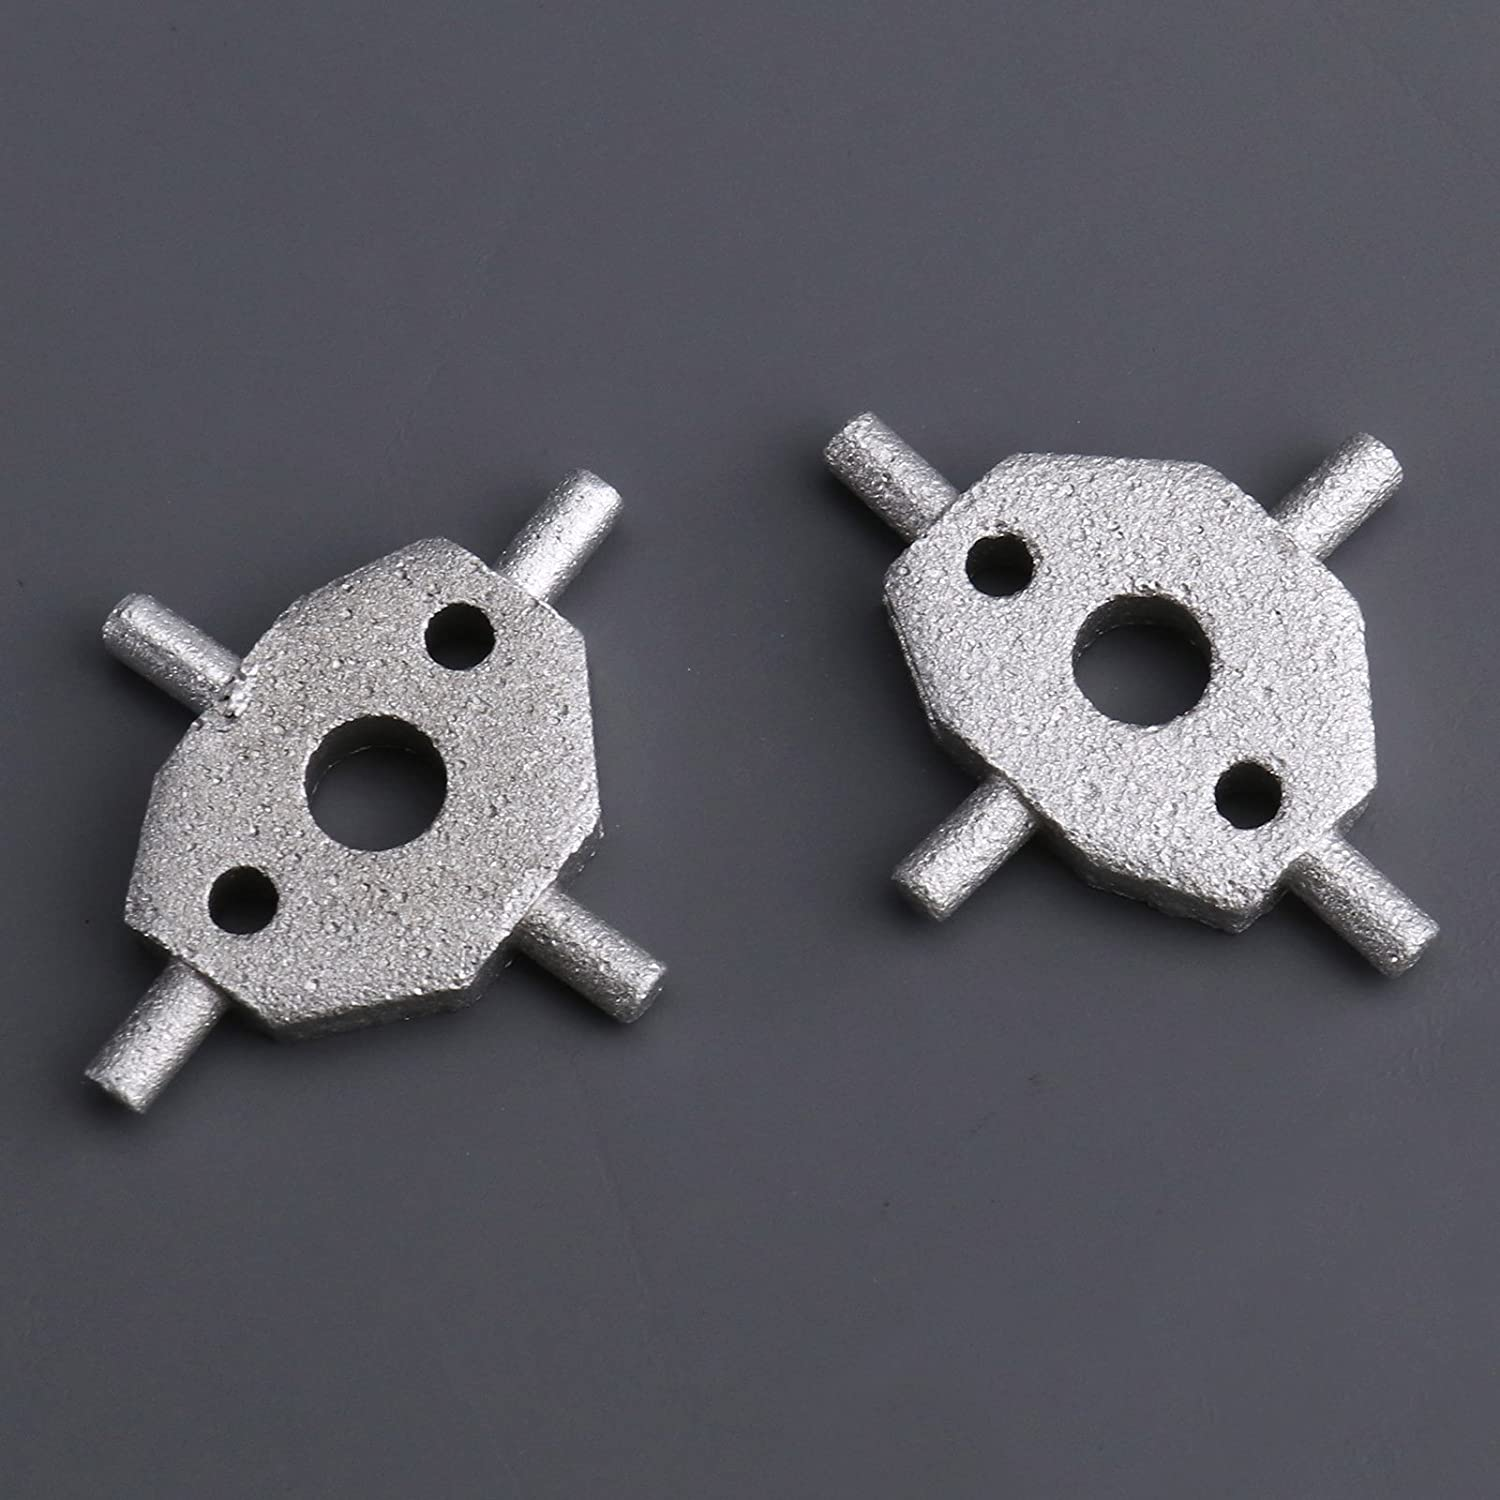 1 Pair Car Truck Vehicle Headlight Washer Nozzle Cover For Jaguar X-Type S-Type